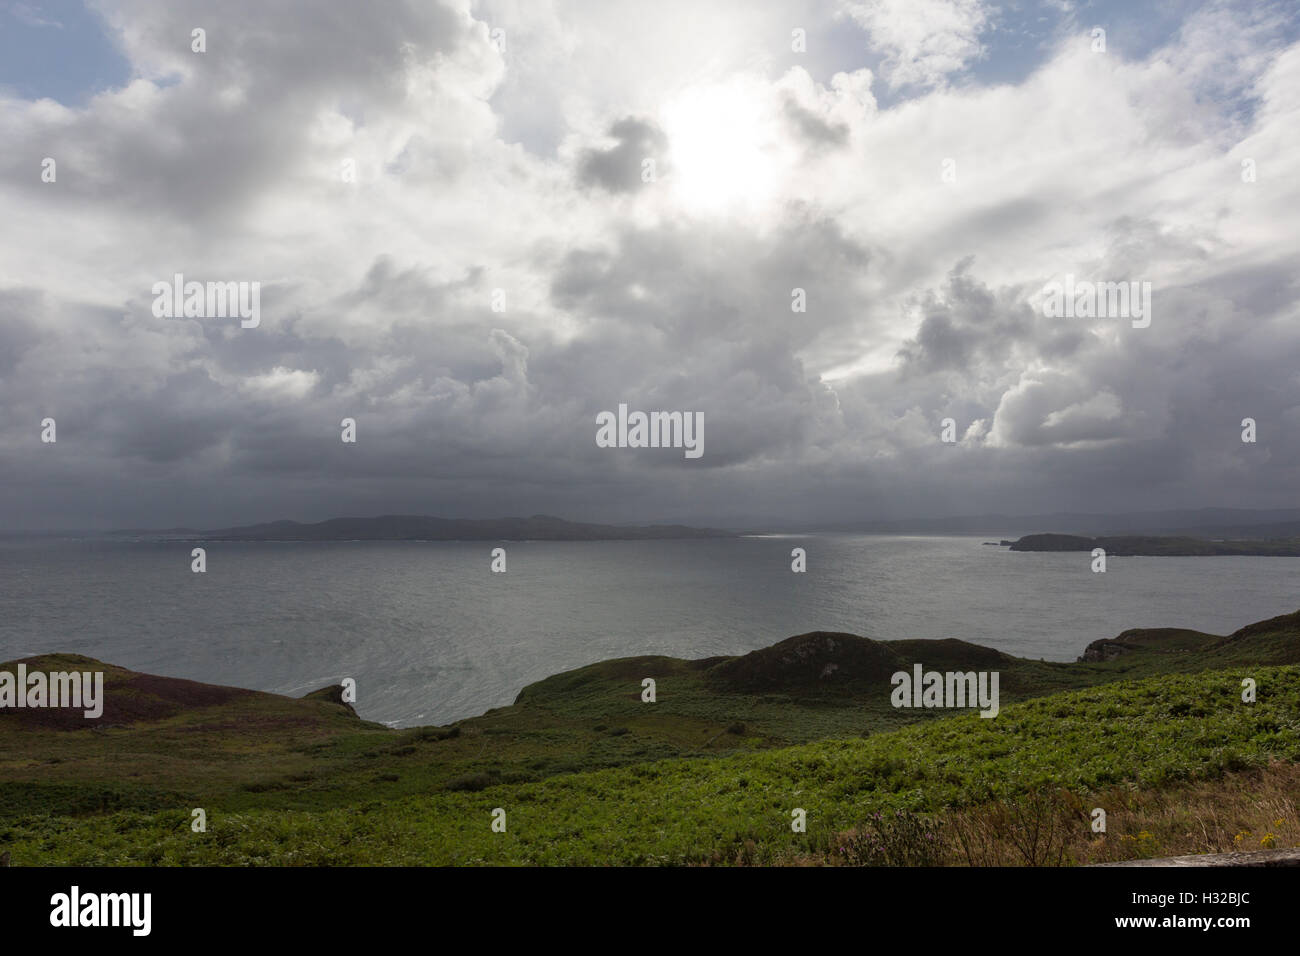 Dunfanaghy Bay from Horn Head, County Donegal, Ireland Stock Photo